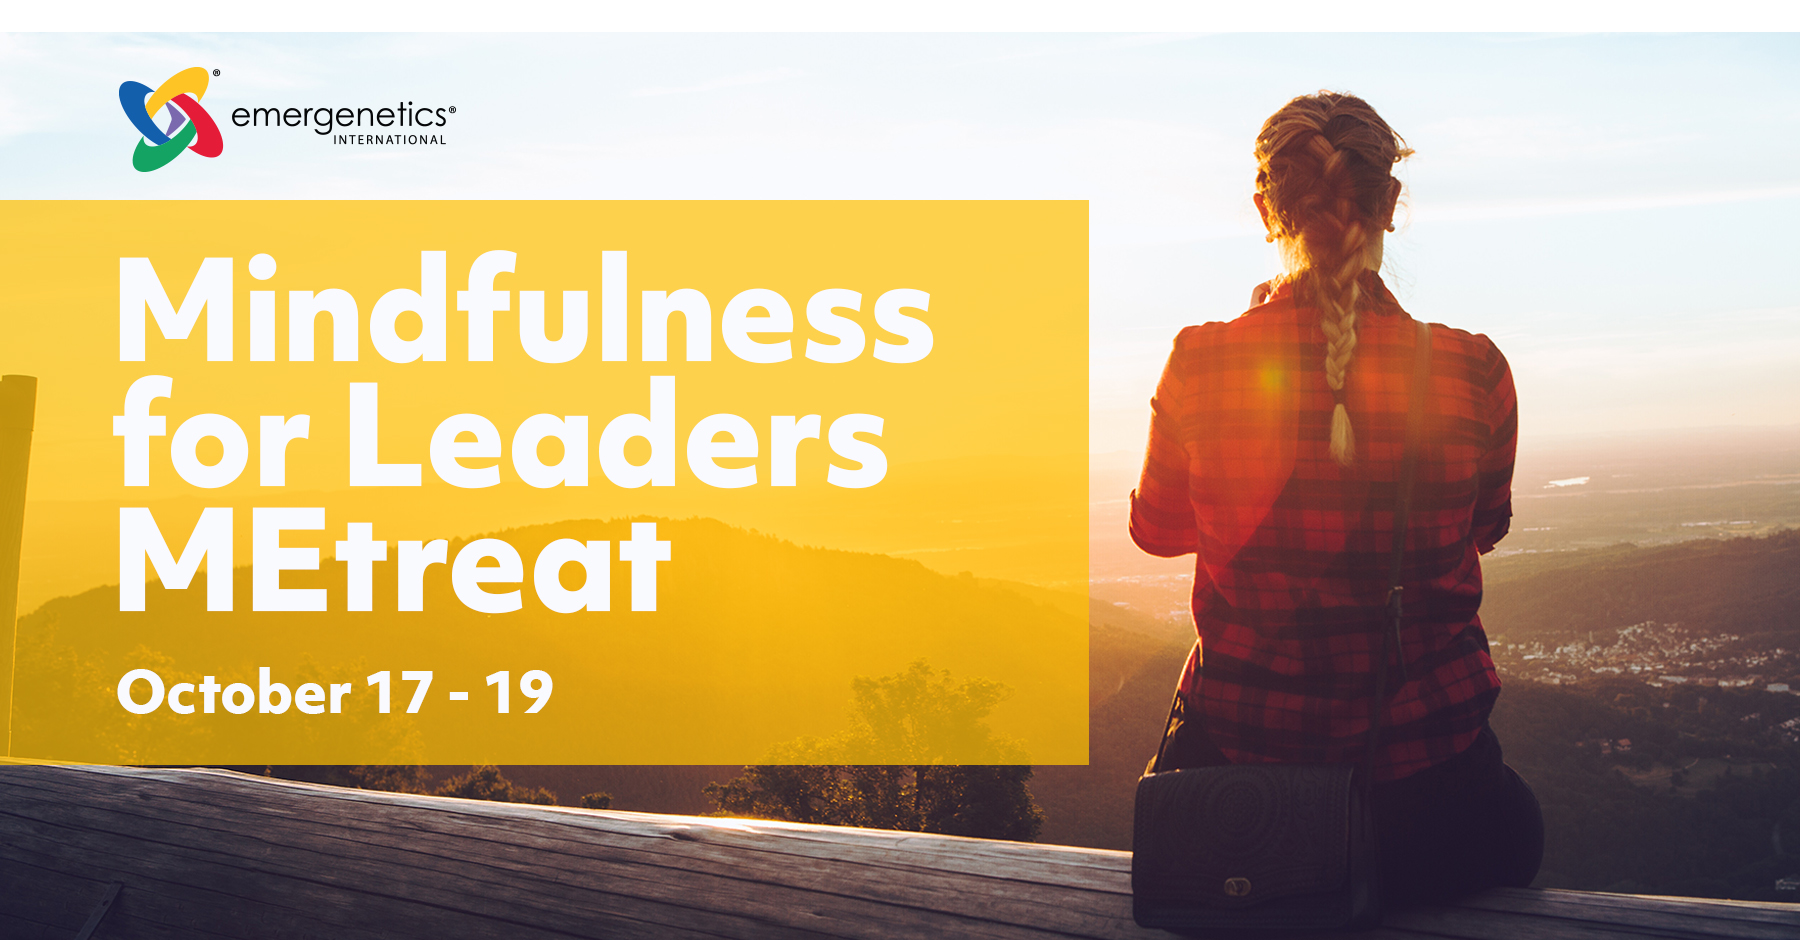 Mindfulness for Leaders MEtreat - October 17 - 19